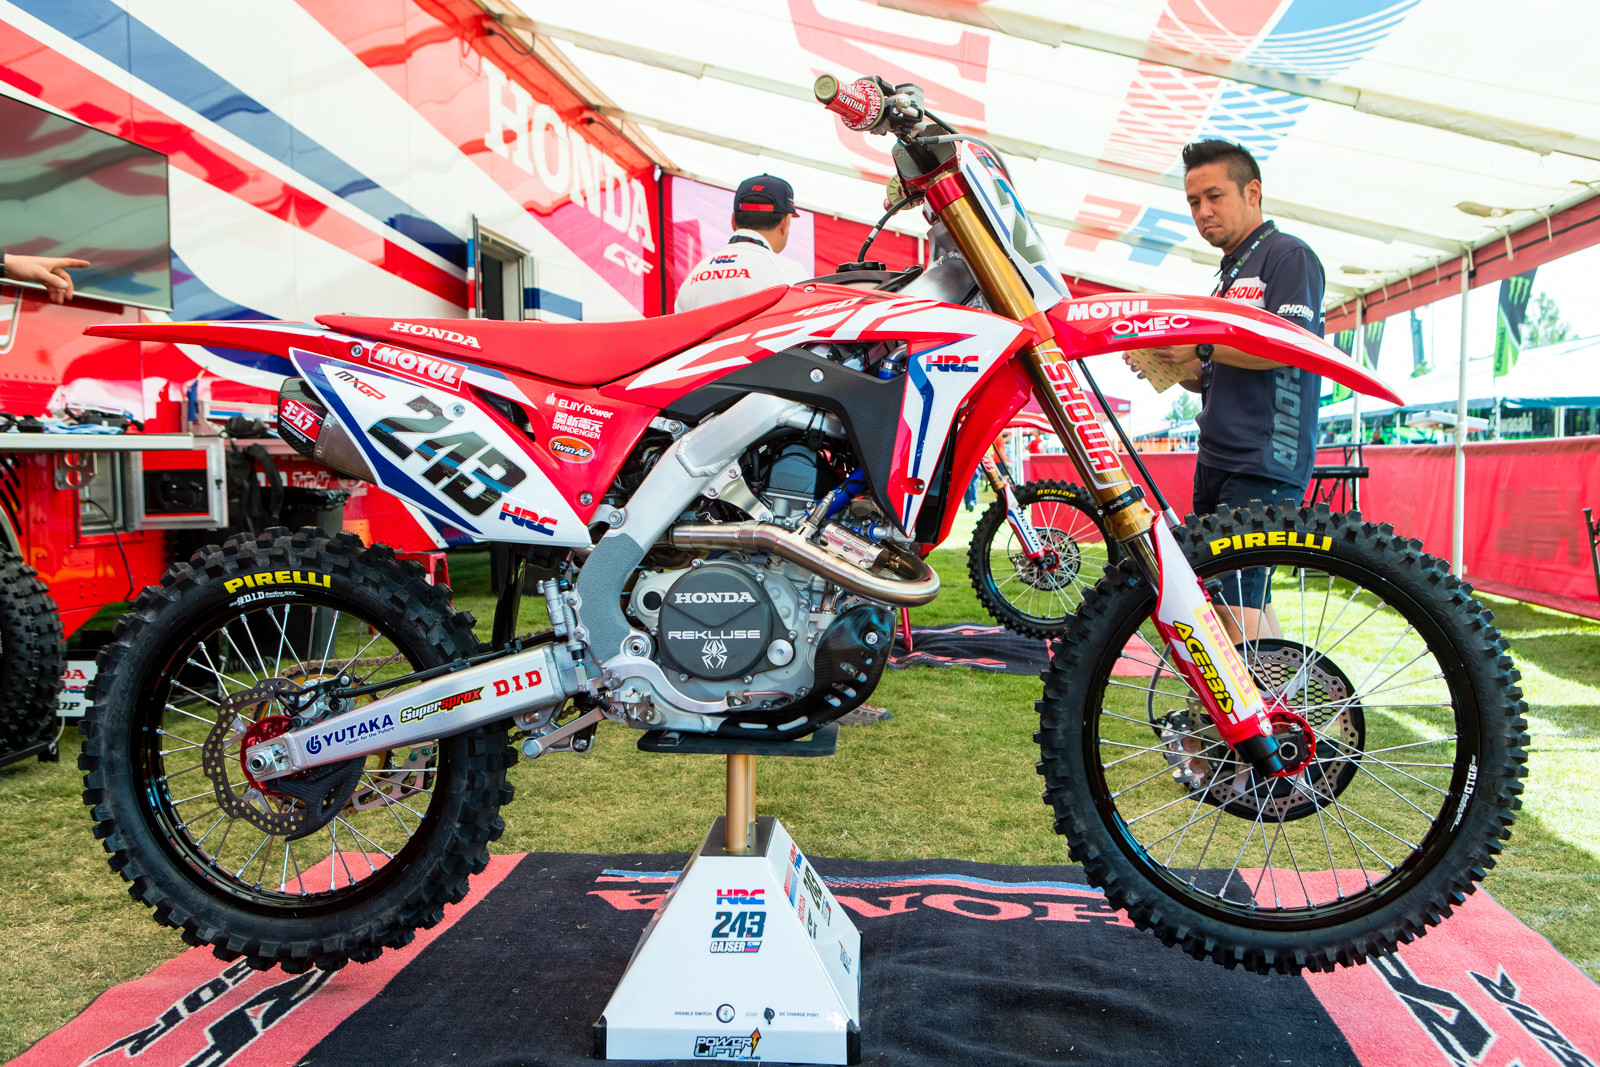 Finally, Tim Gajser will be in action..in the US...on a Supercross track! Gajser has been wanting to do this event for a few years now and even brought a bike from the GPs with him to ride. This thing is pretty darn trick...